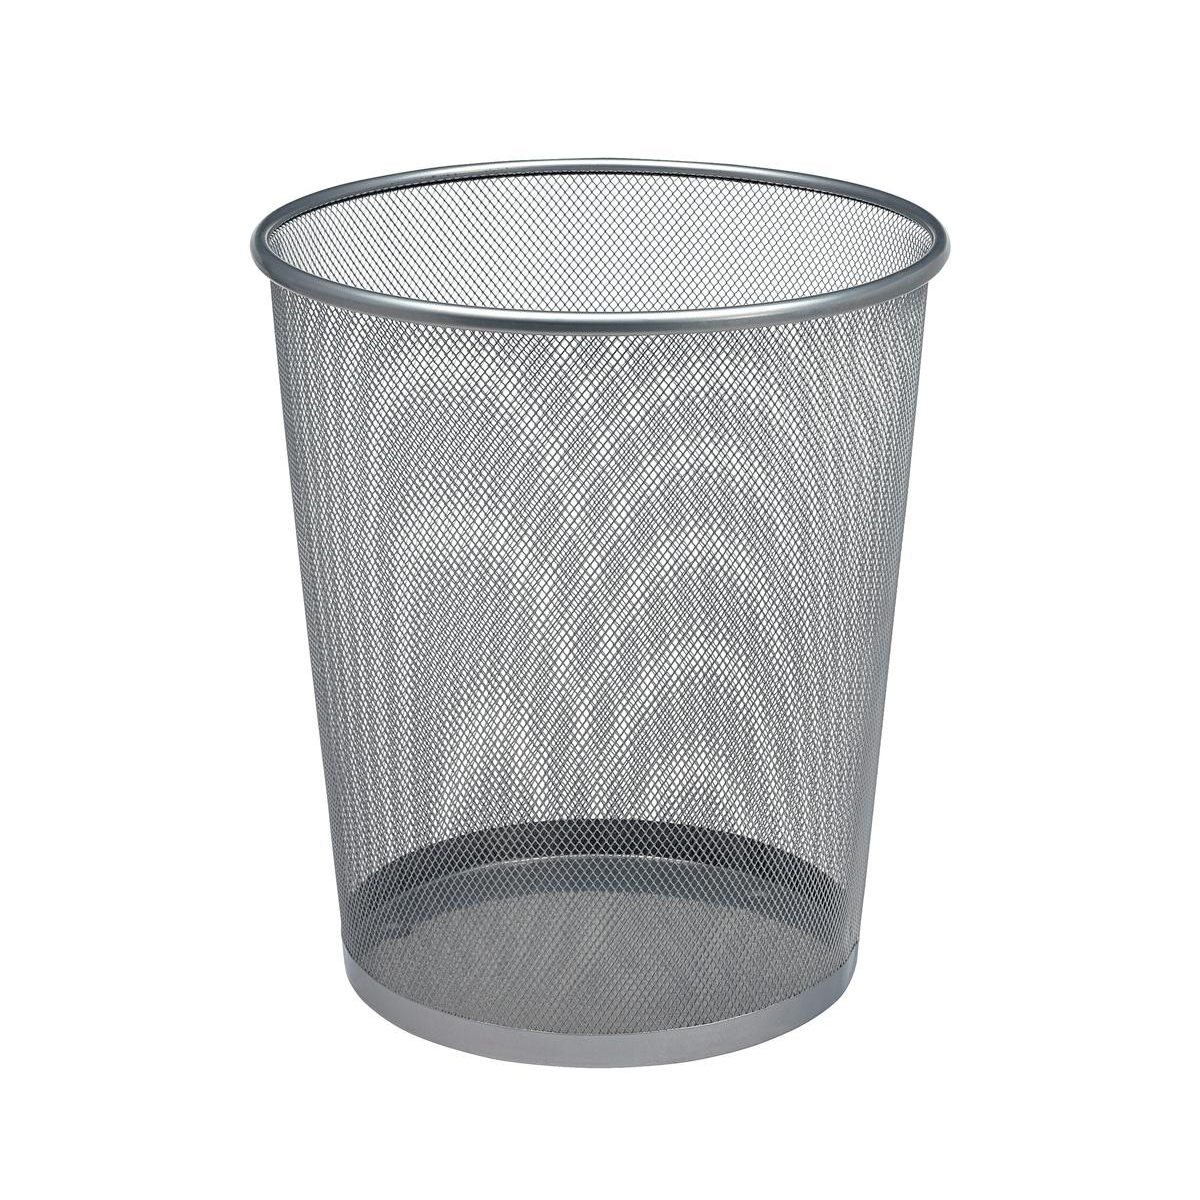 5 Star Office Mesh Waste Bin Lightweight Sturdy Scratch Resistant 15-20 Litres 275x350mm Silver